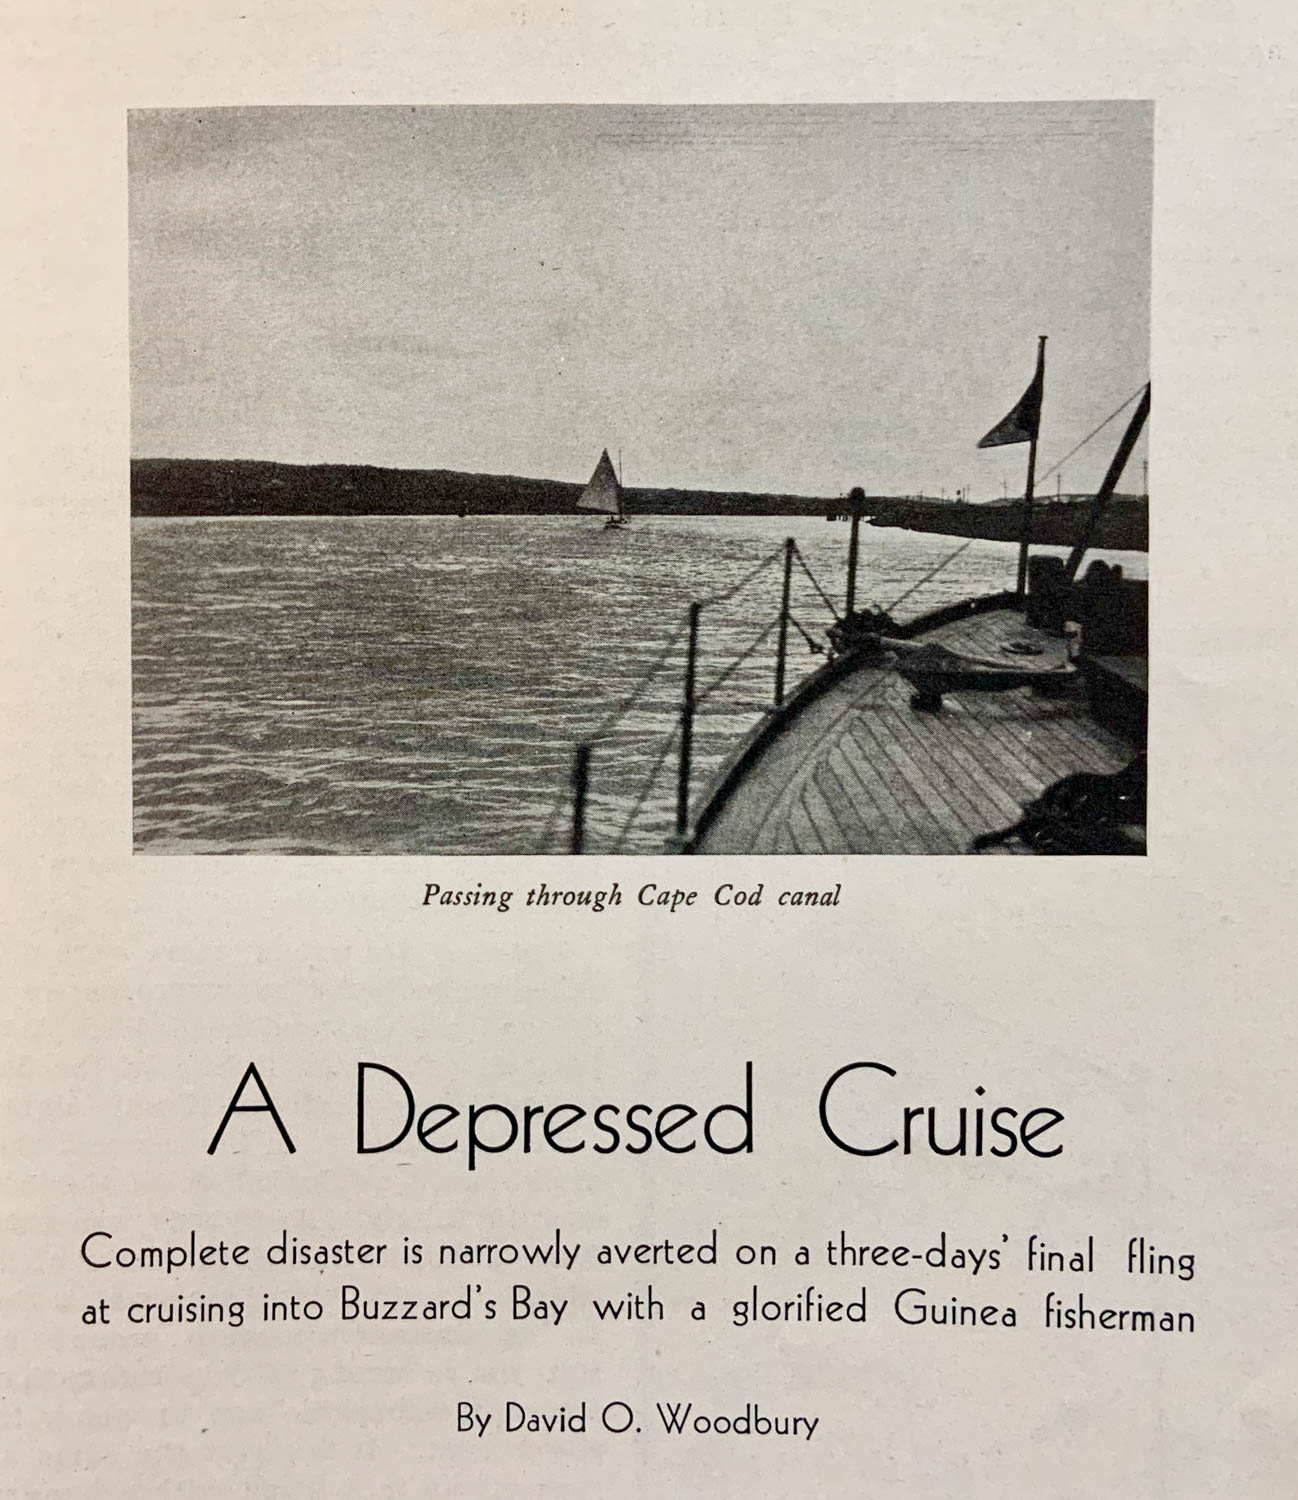 A Depressed Cruise by David O. Woodbury